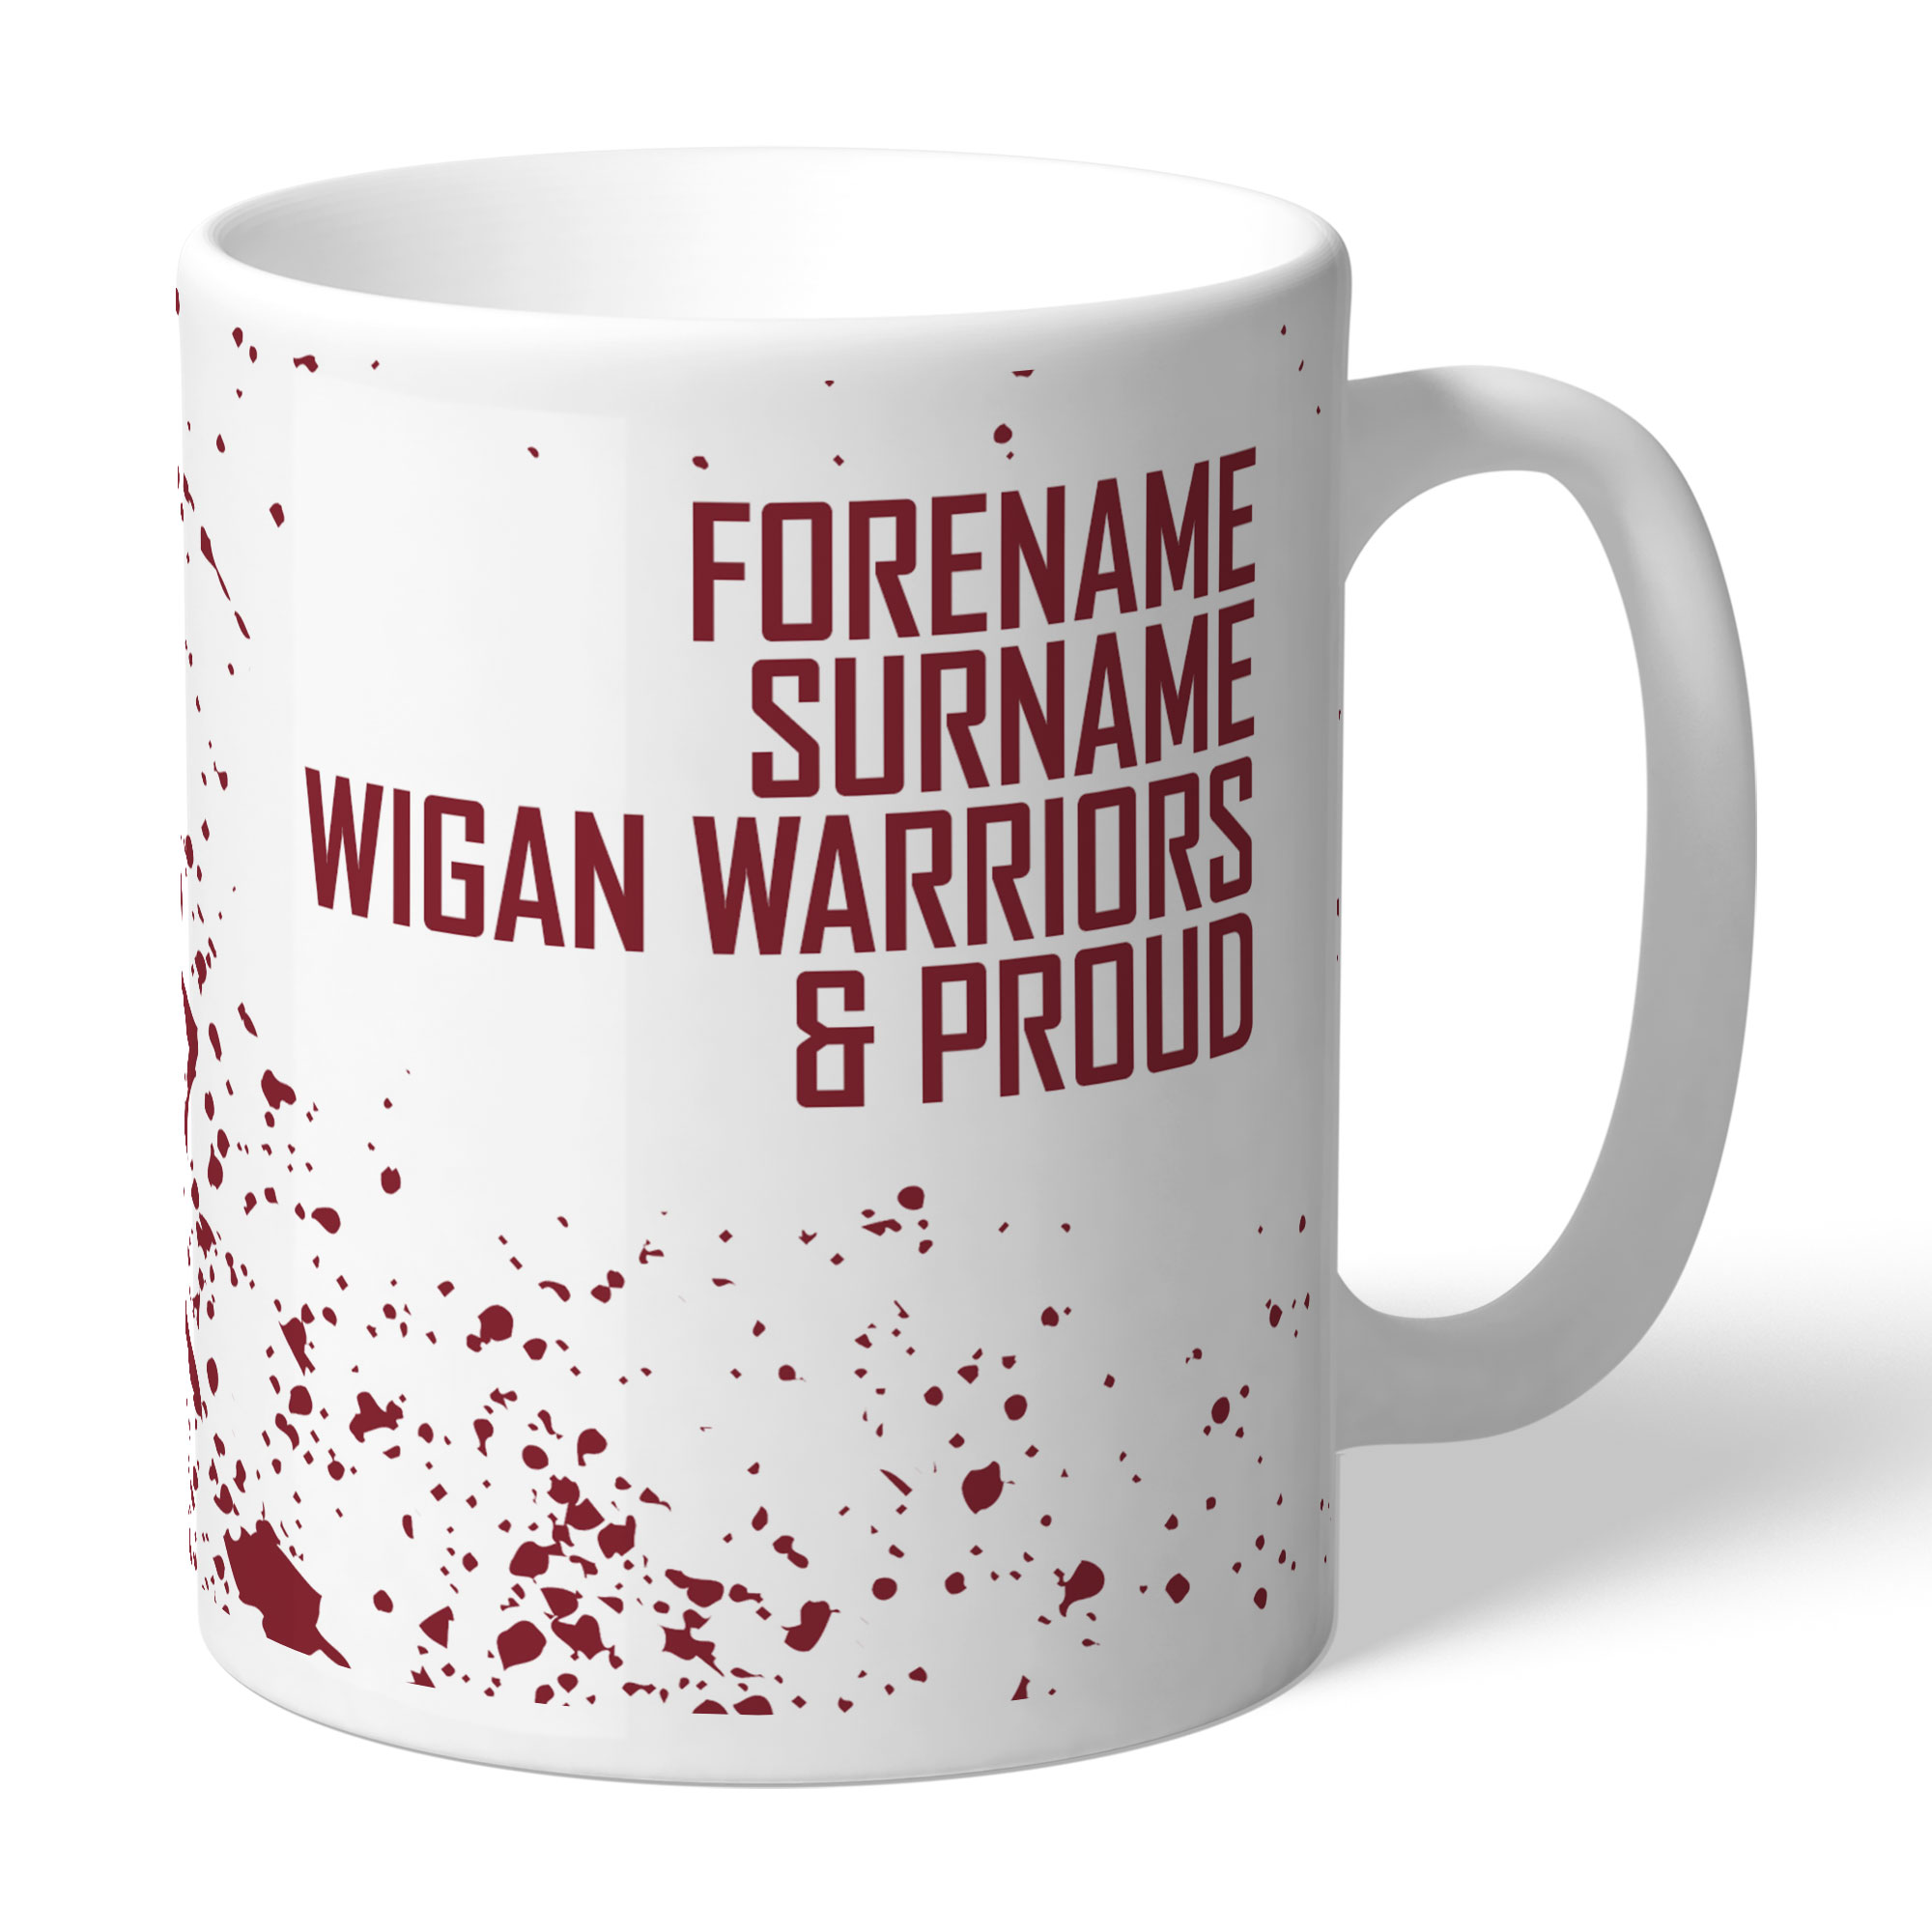 Wigan Warriors Proud Mug